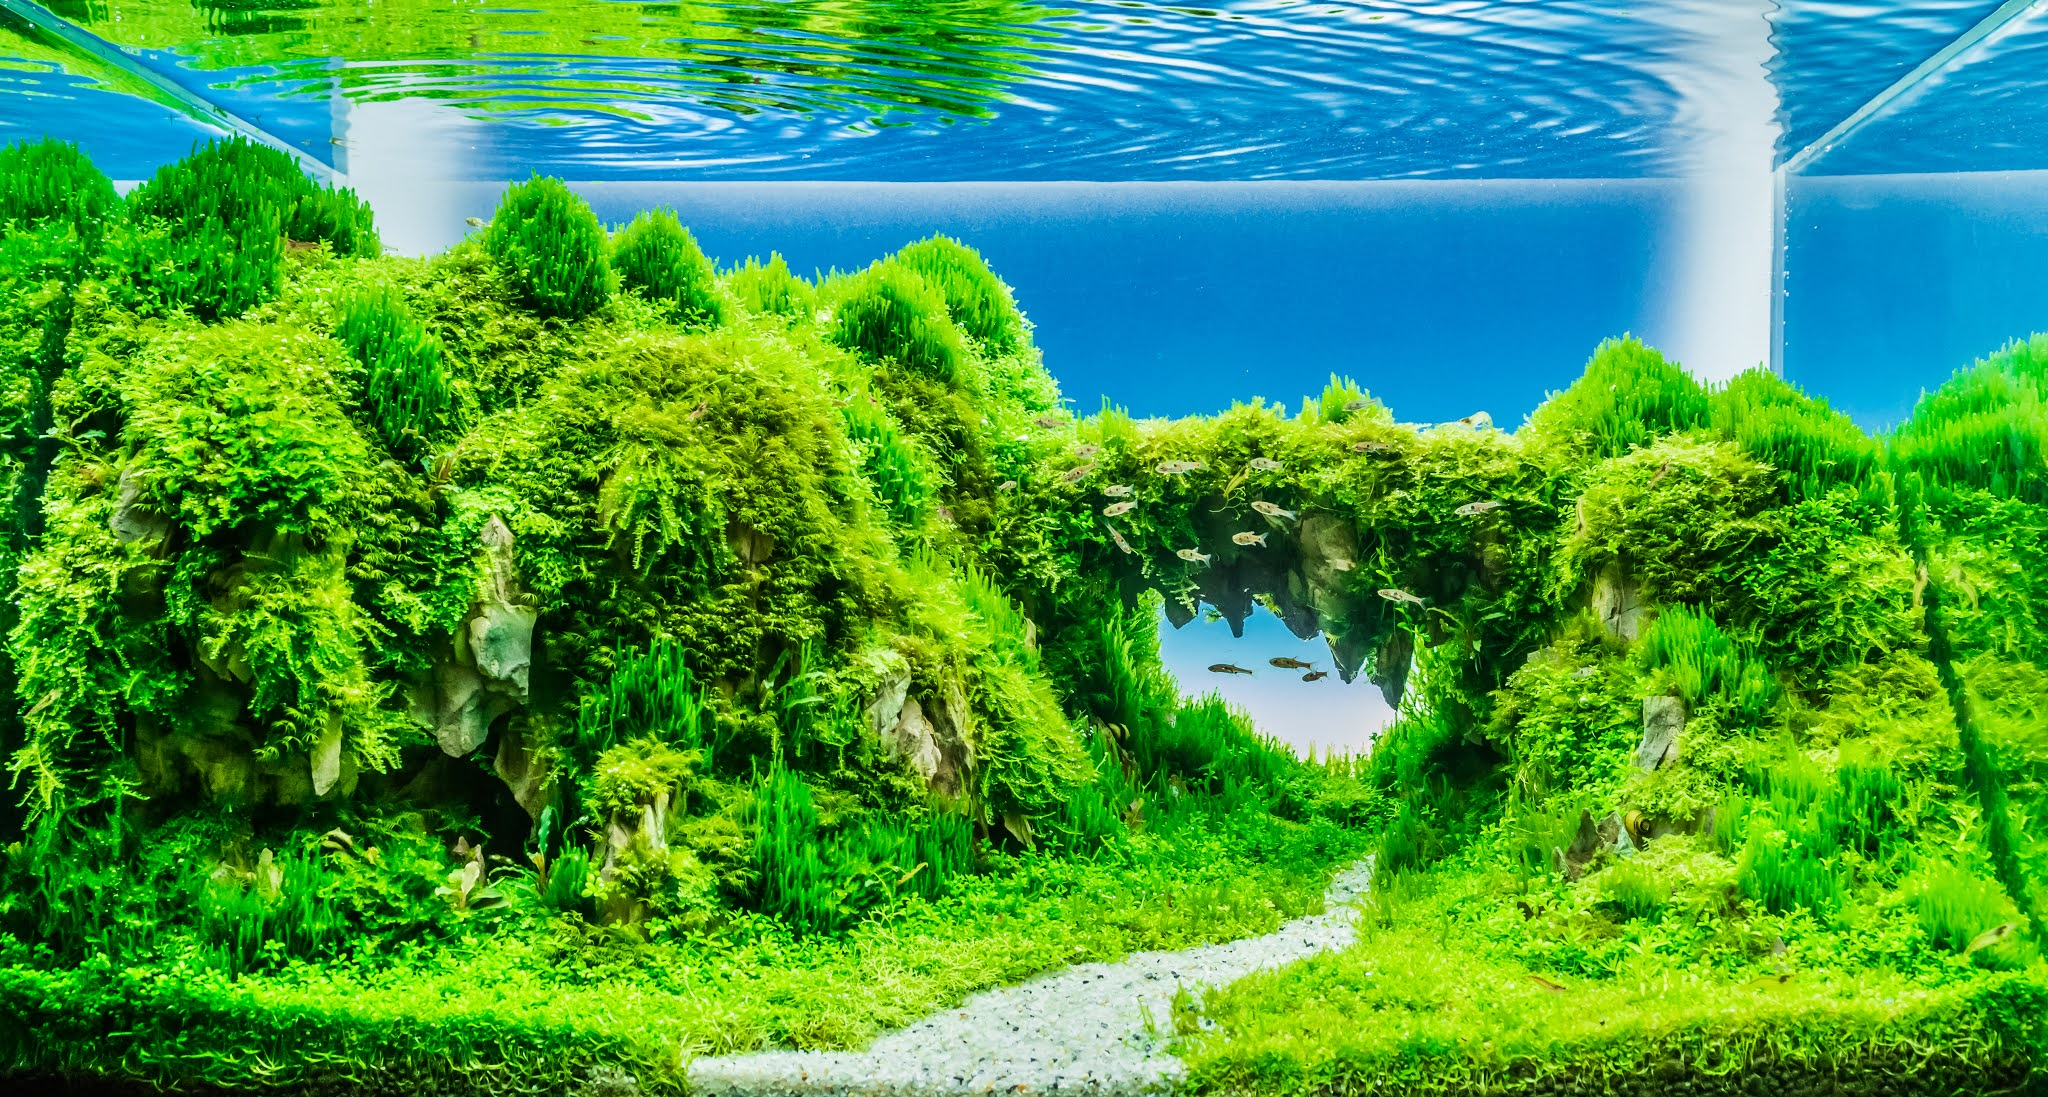 How To Make Aquascape The Simplest Way Fish Hobbyist